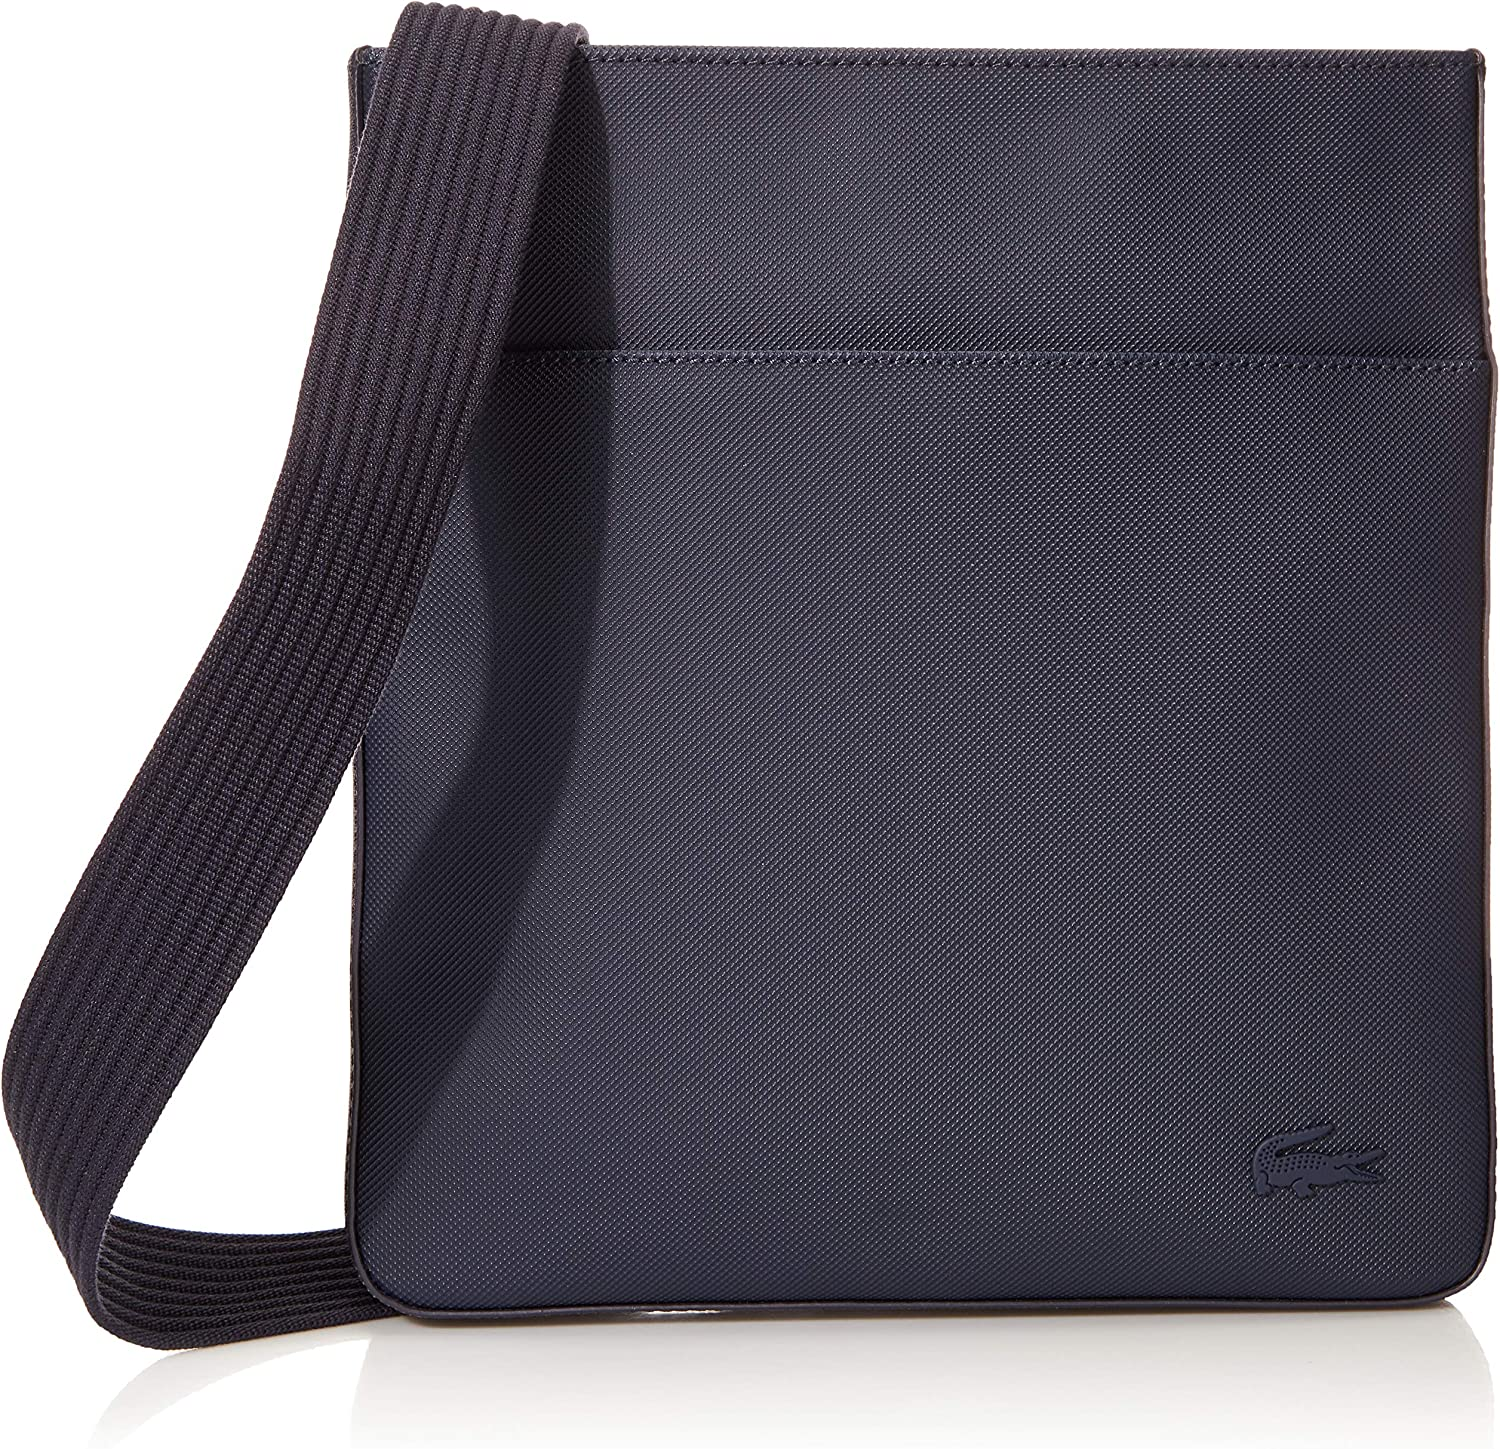 Lacoste Mens Flat Crossover Bag